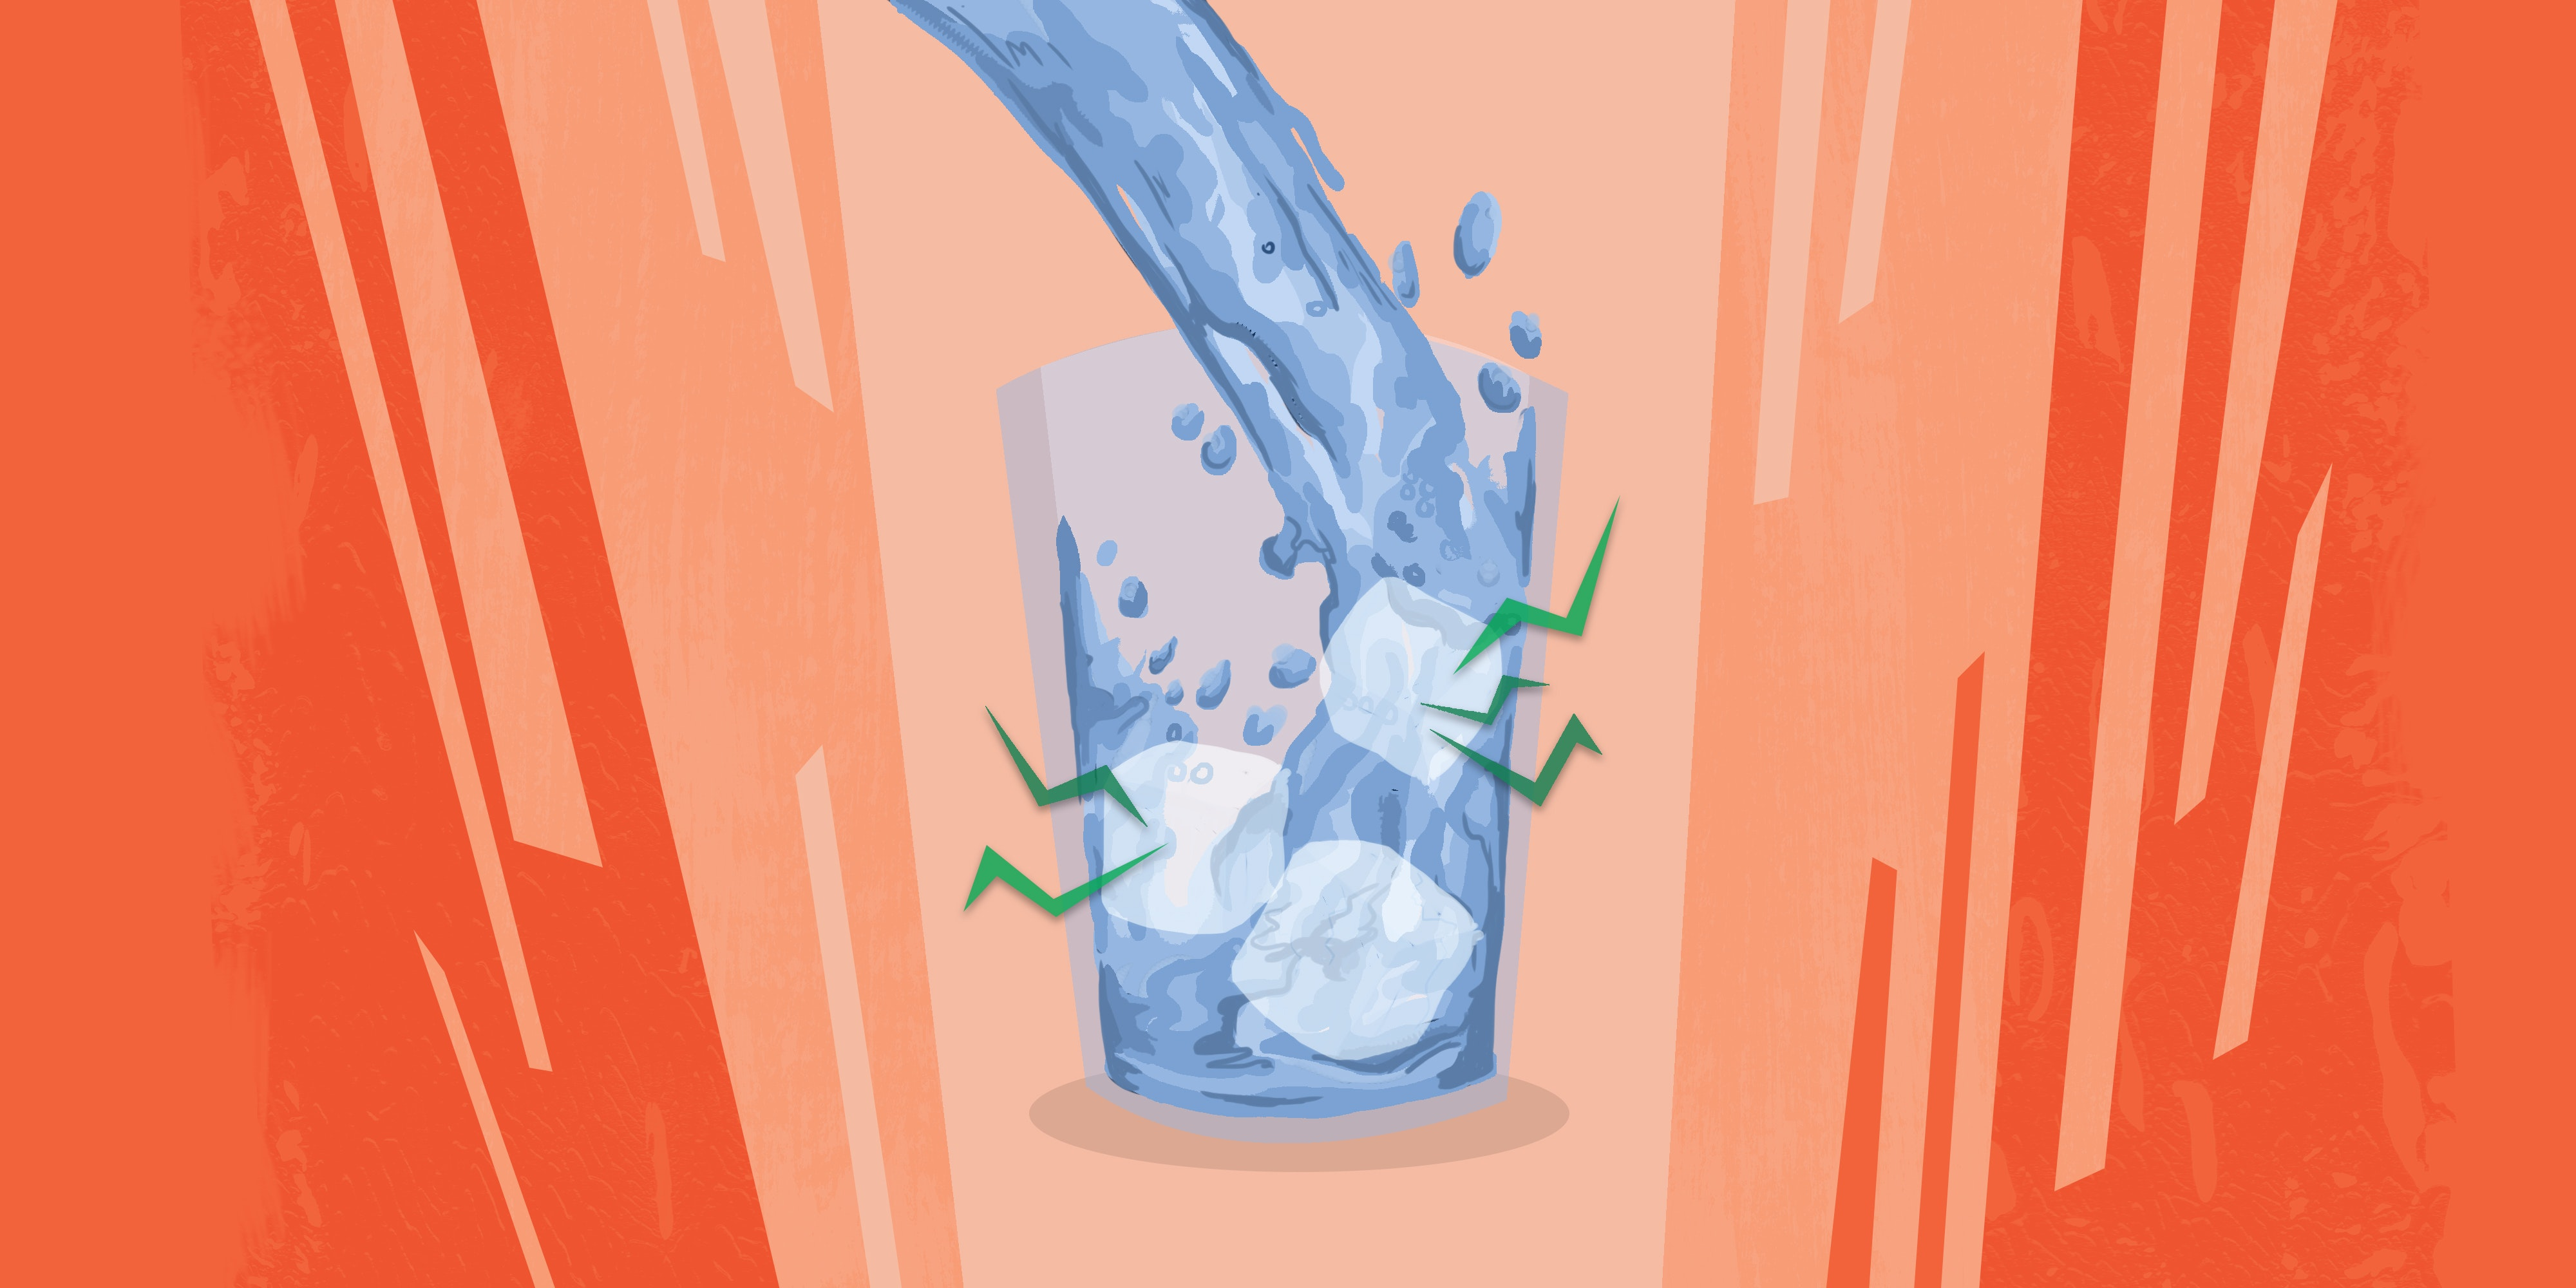 Curious Kids: Why does ice make a cracking sound when water is poured on it?